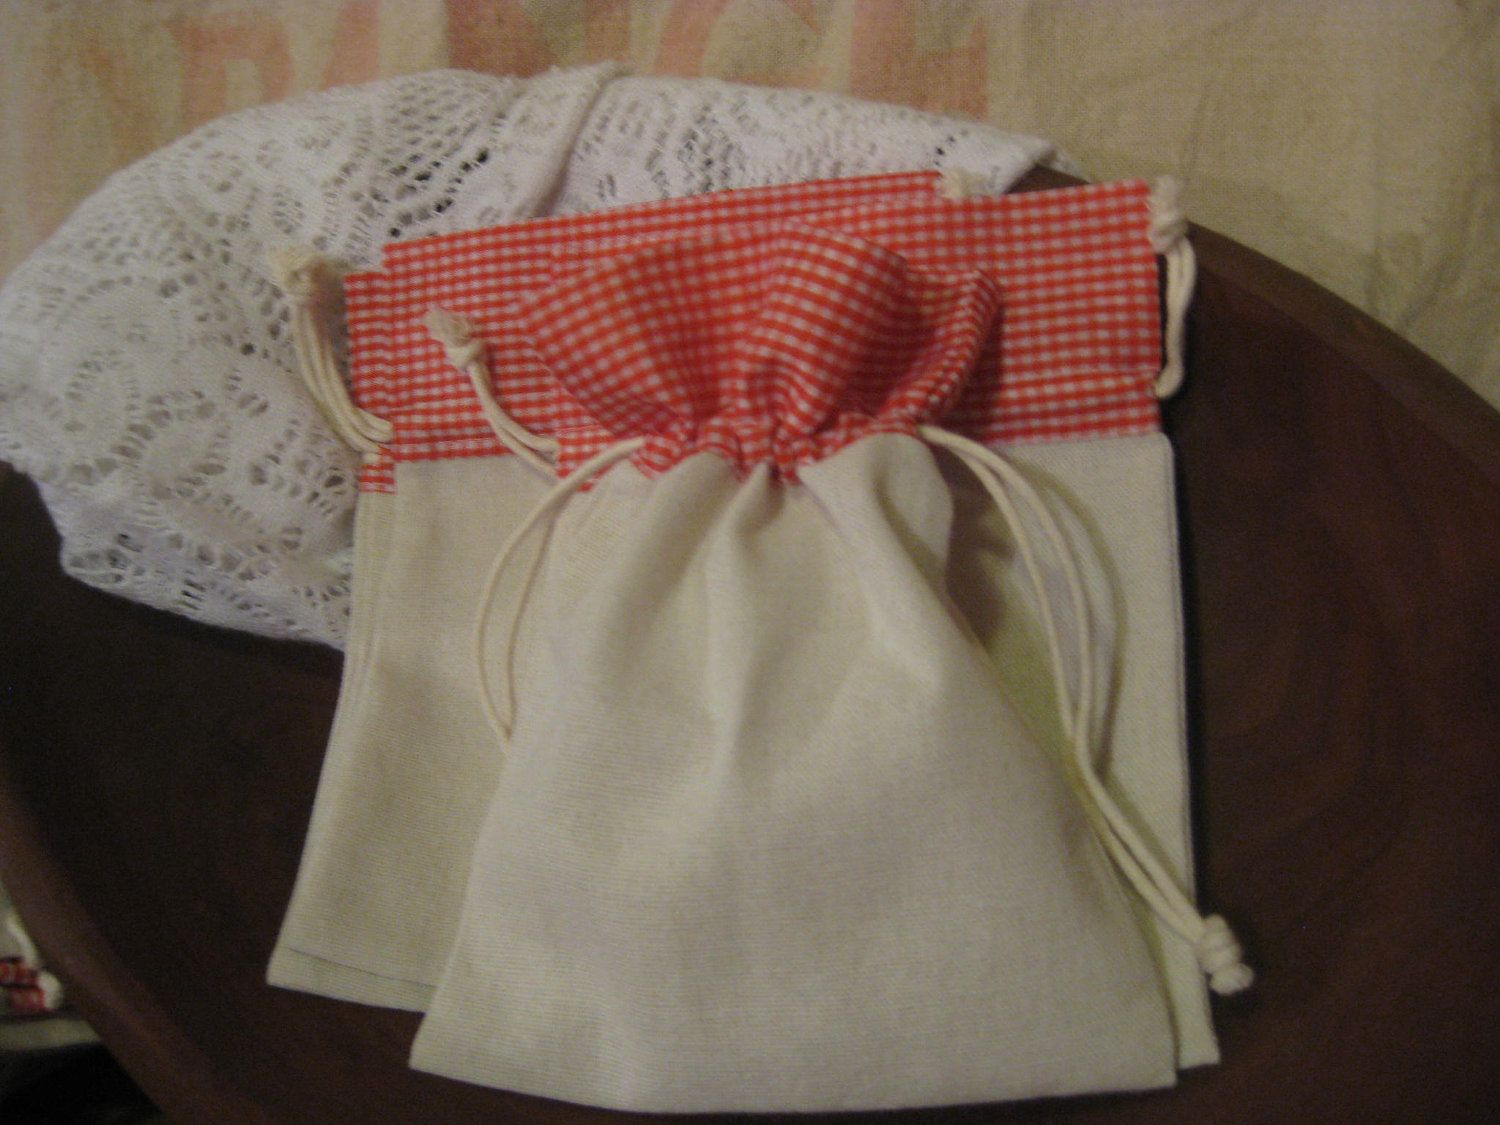 For Kids Favor Bags // Cotton Bag with Red Gingham Top Drawstring Set of 4. $4.50, via Etsy.